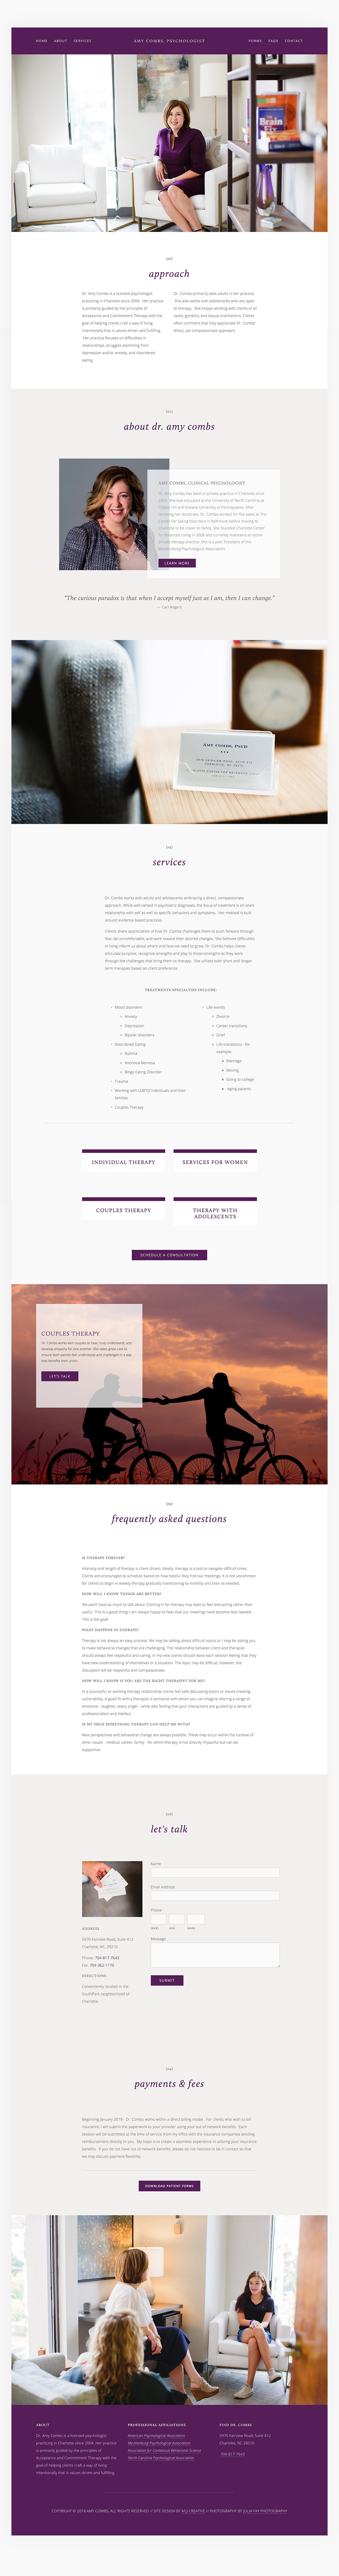 dr-amy-combs-squarespace-website.jpg